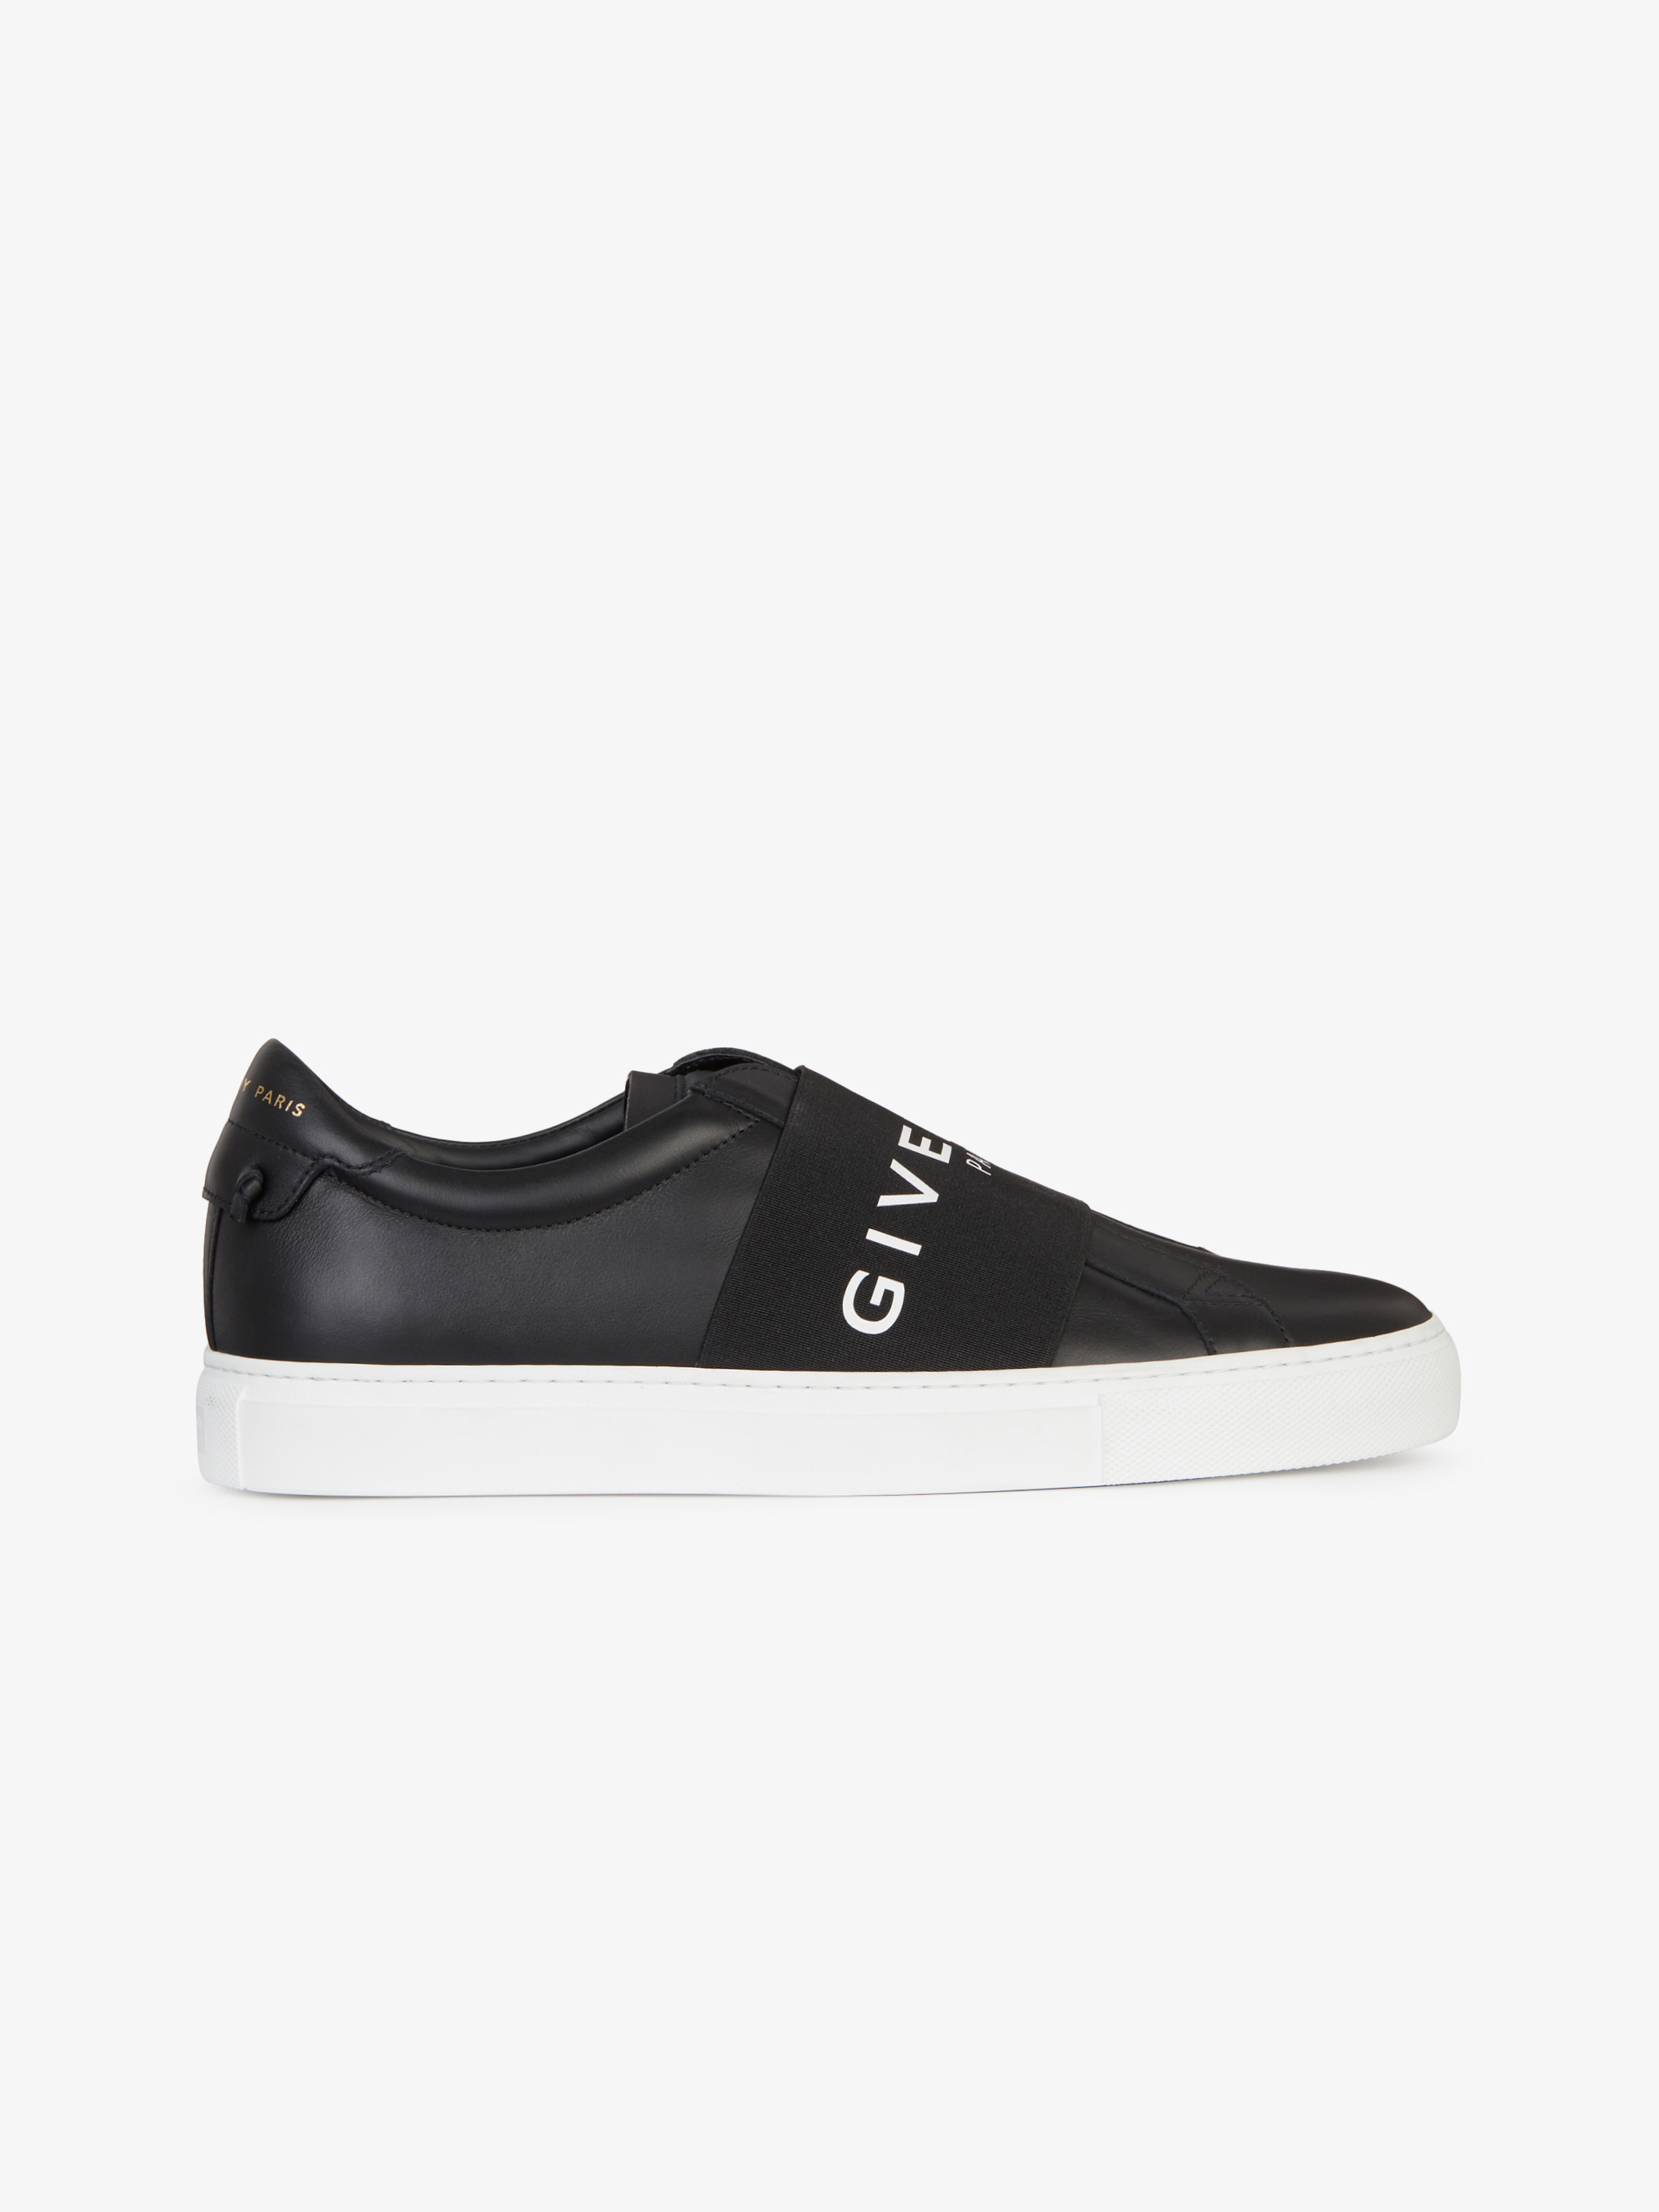 GIVENCHY PARIS strap sneakers in leather